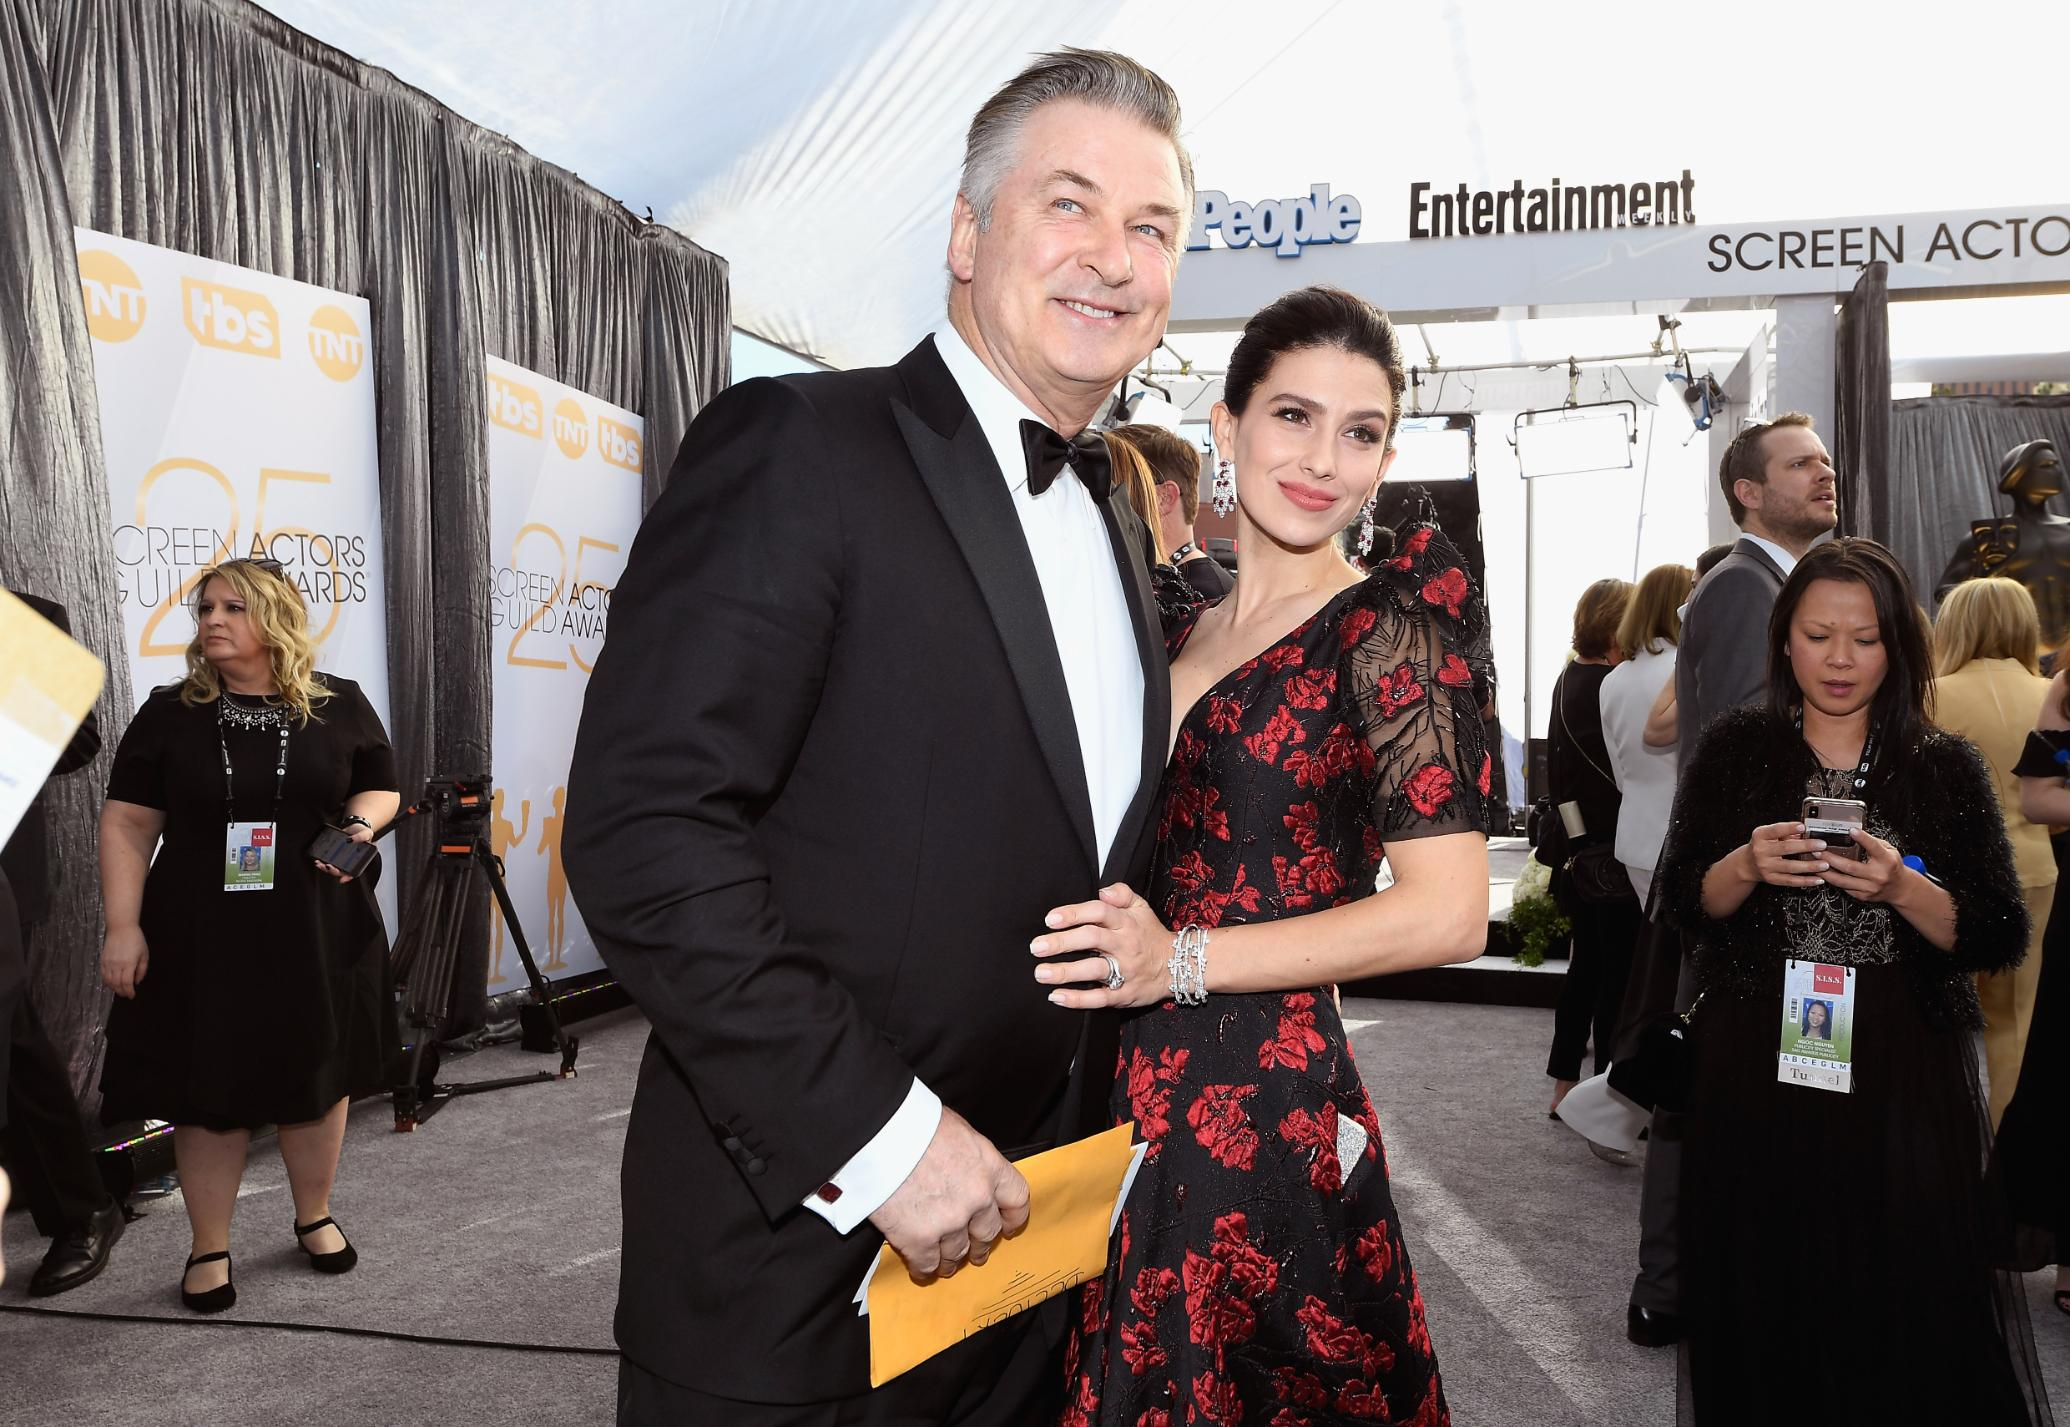 Hilaria and Alec Baldwin welcome new baby